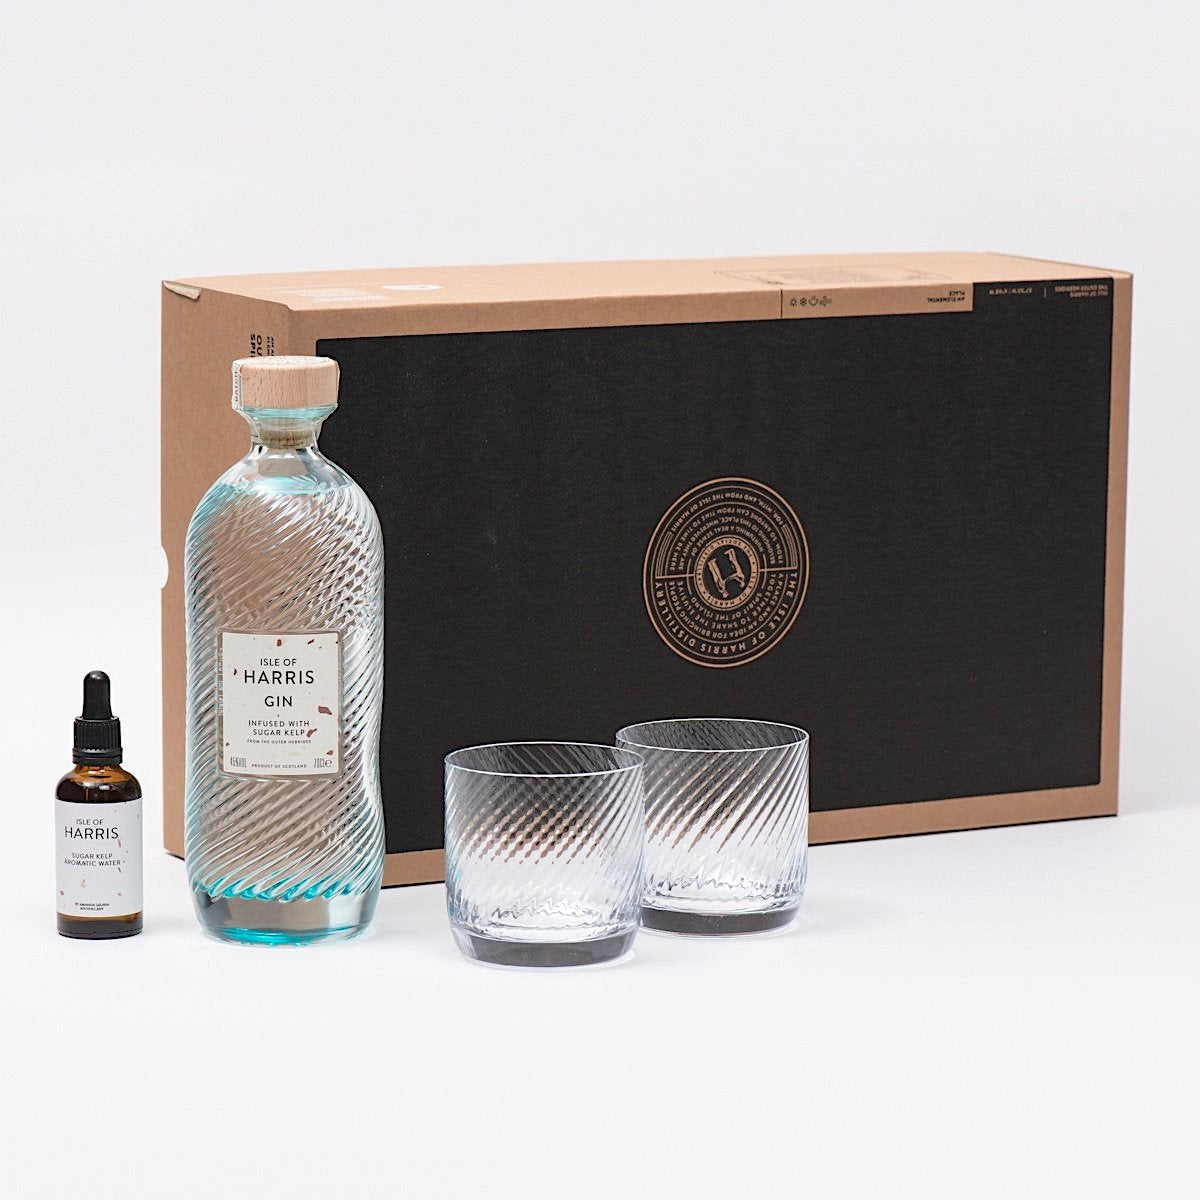 The Harris Gin Serve + Aromatic Water Gift Set